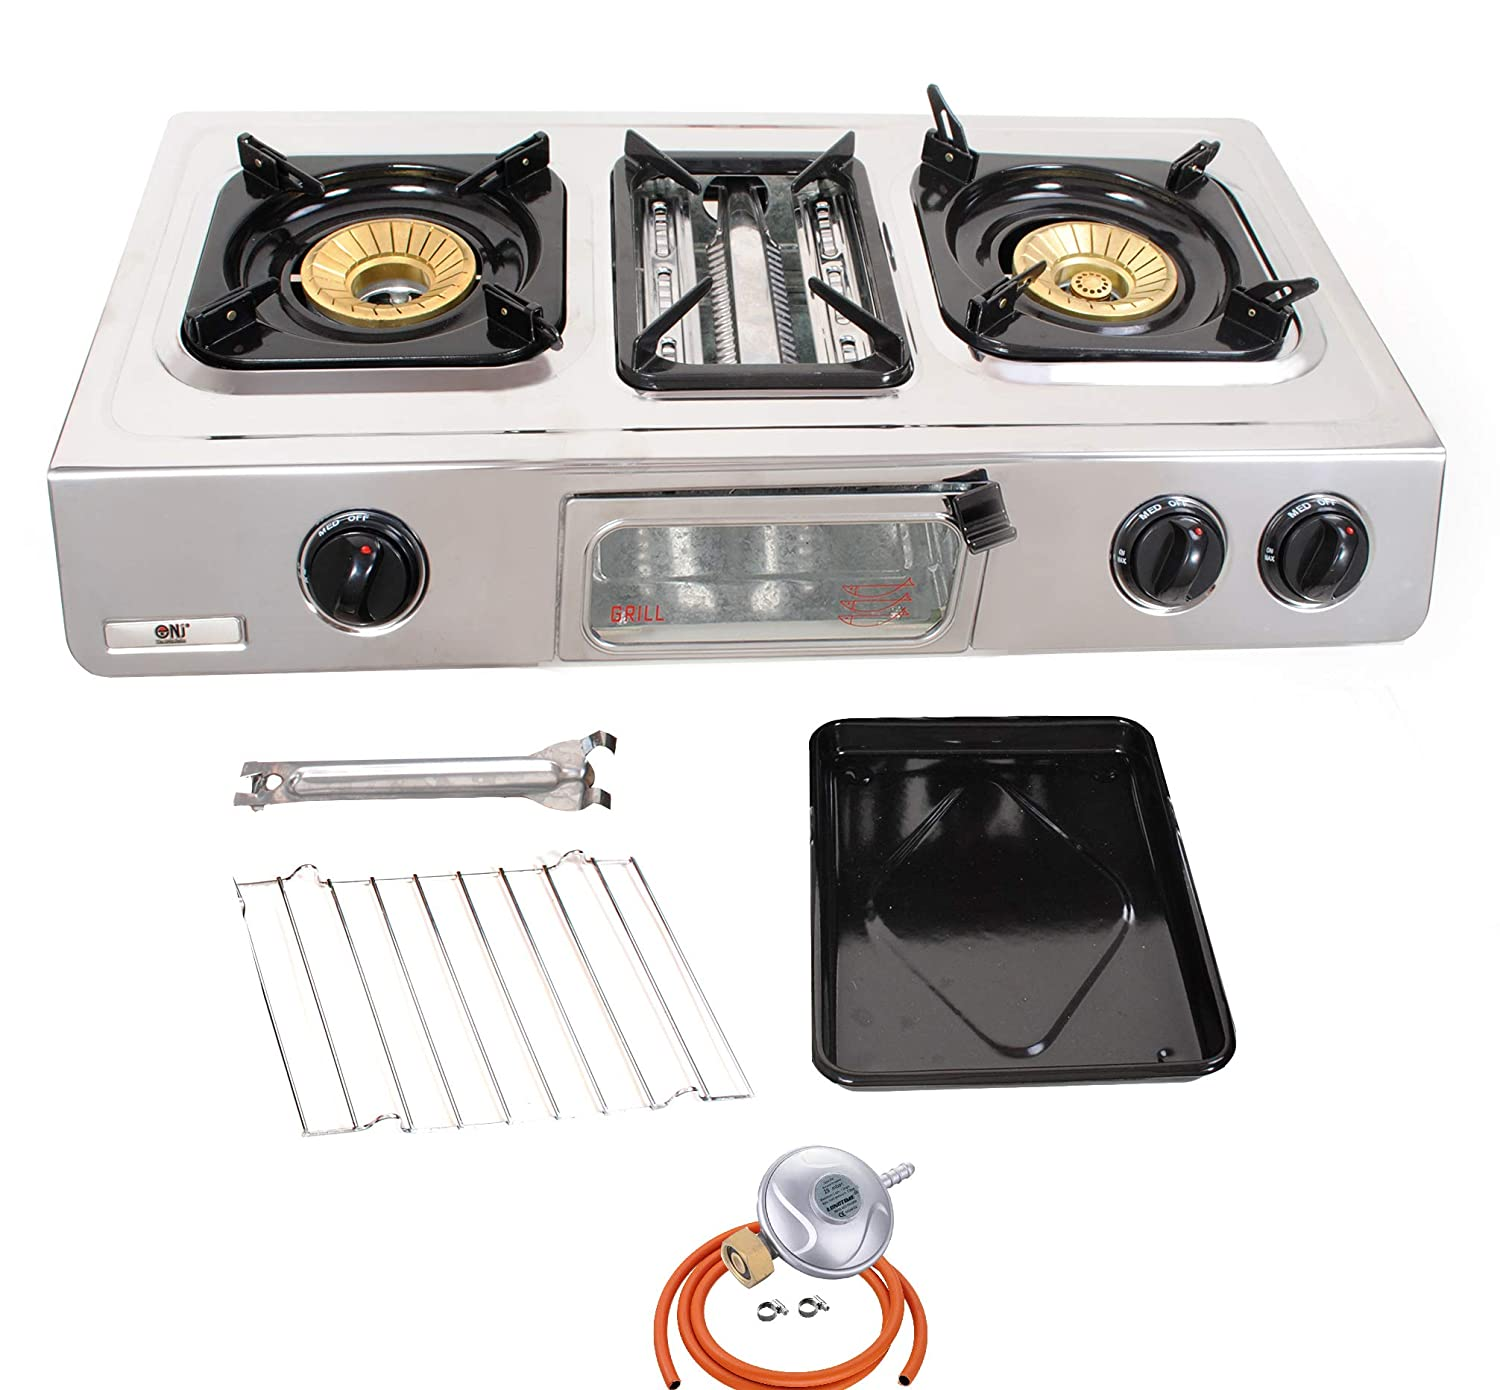 NJ GC-87 Gas Stove 2 Burners Grill & Oven Stainless Steel Outdoor BBQ + Gas Regulator Set FONTRON LTD